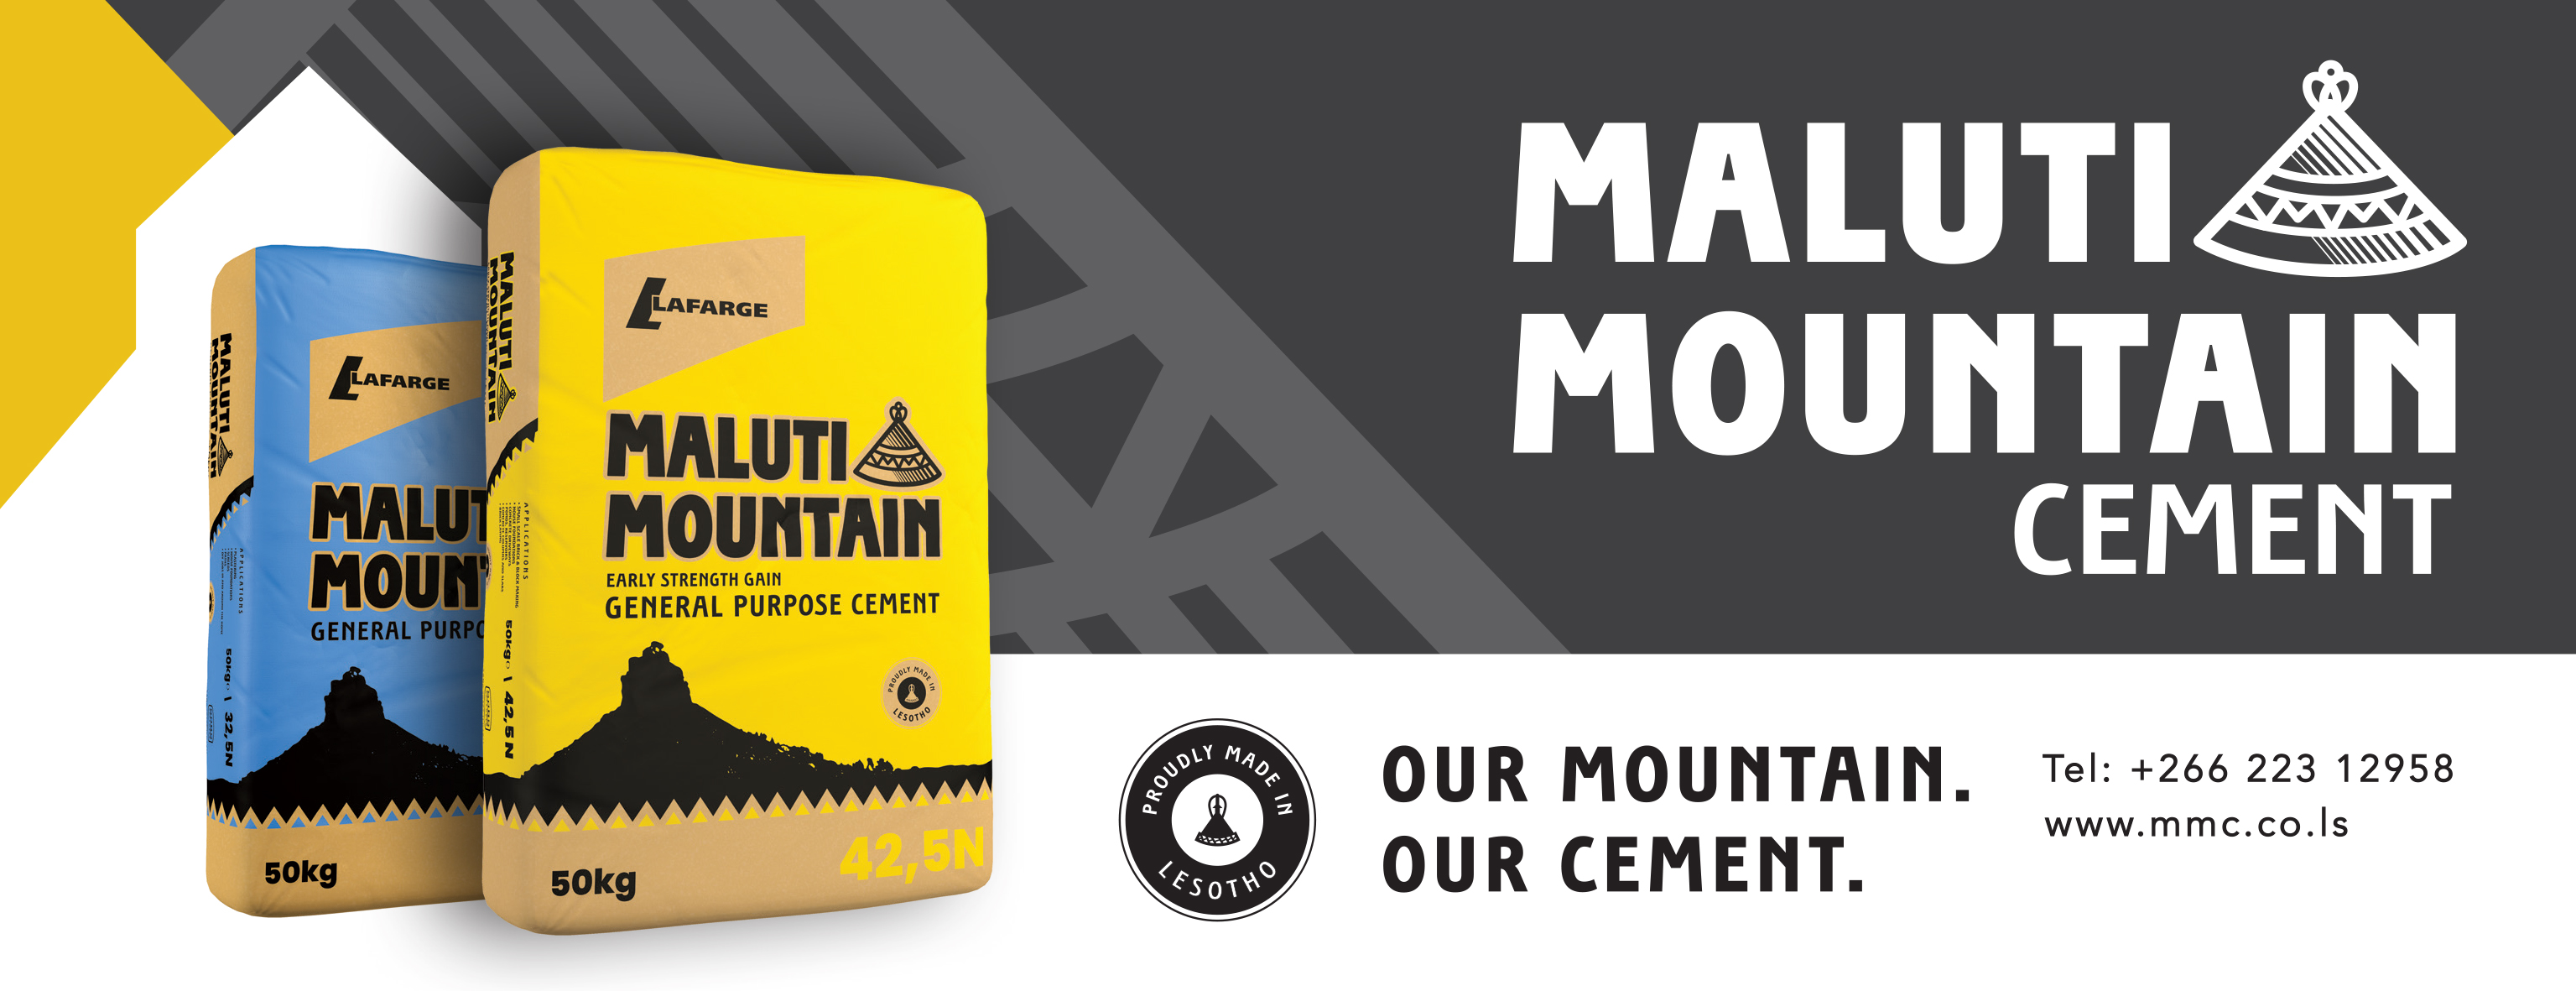 Maluti Mountain Cement